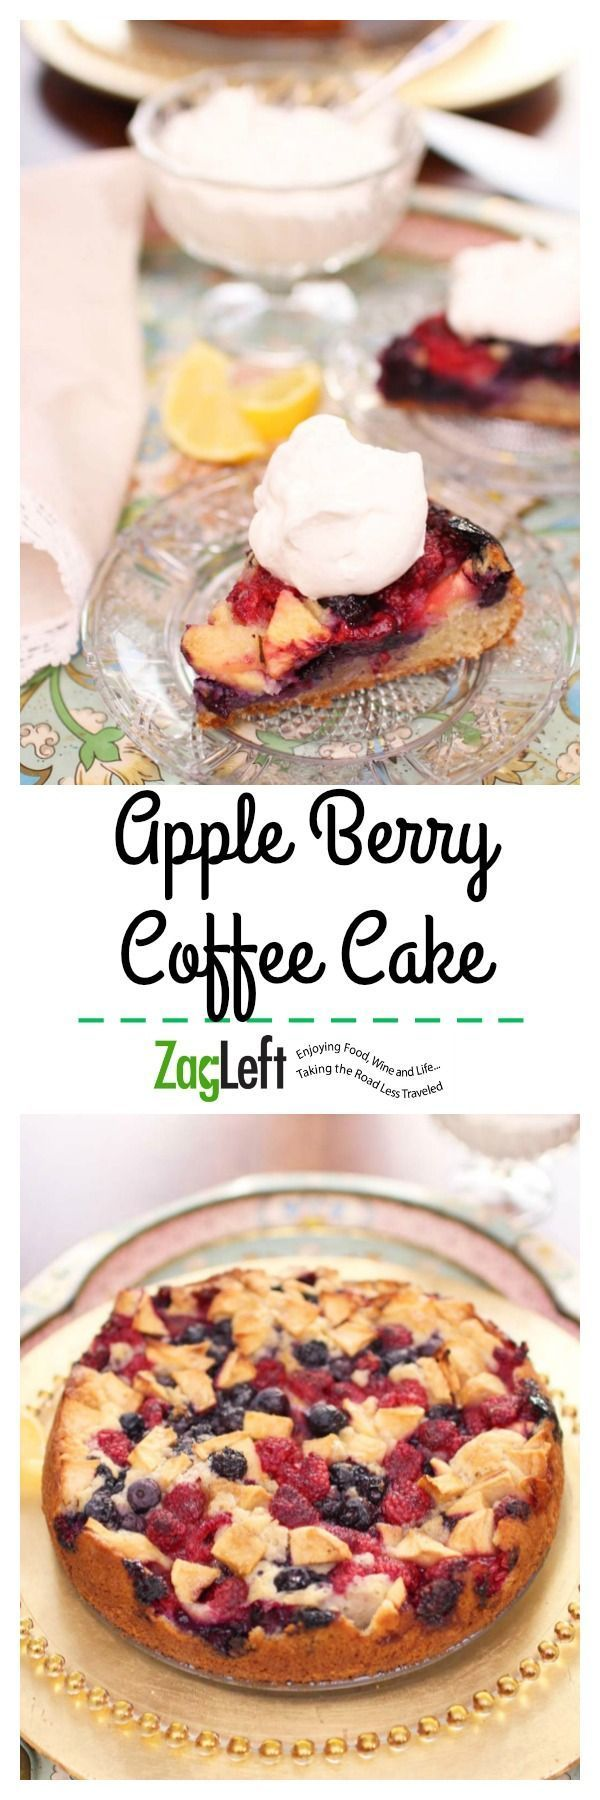 Tender Apple Berry Coffee Cake topped with blueberries, raspberries and apples. Perfect as a dessert or for breakfast. | http://zagleft.com